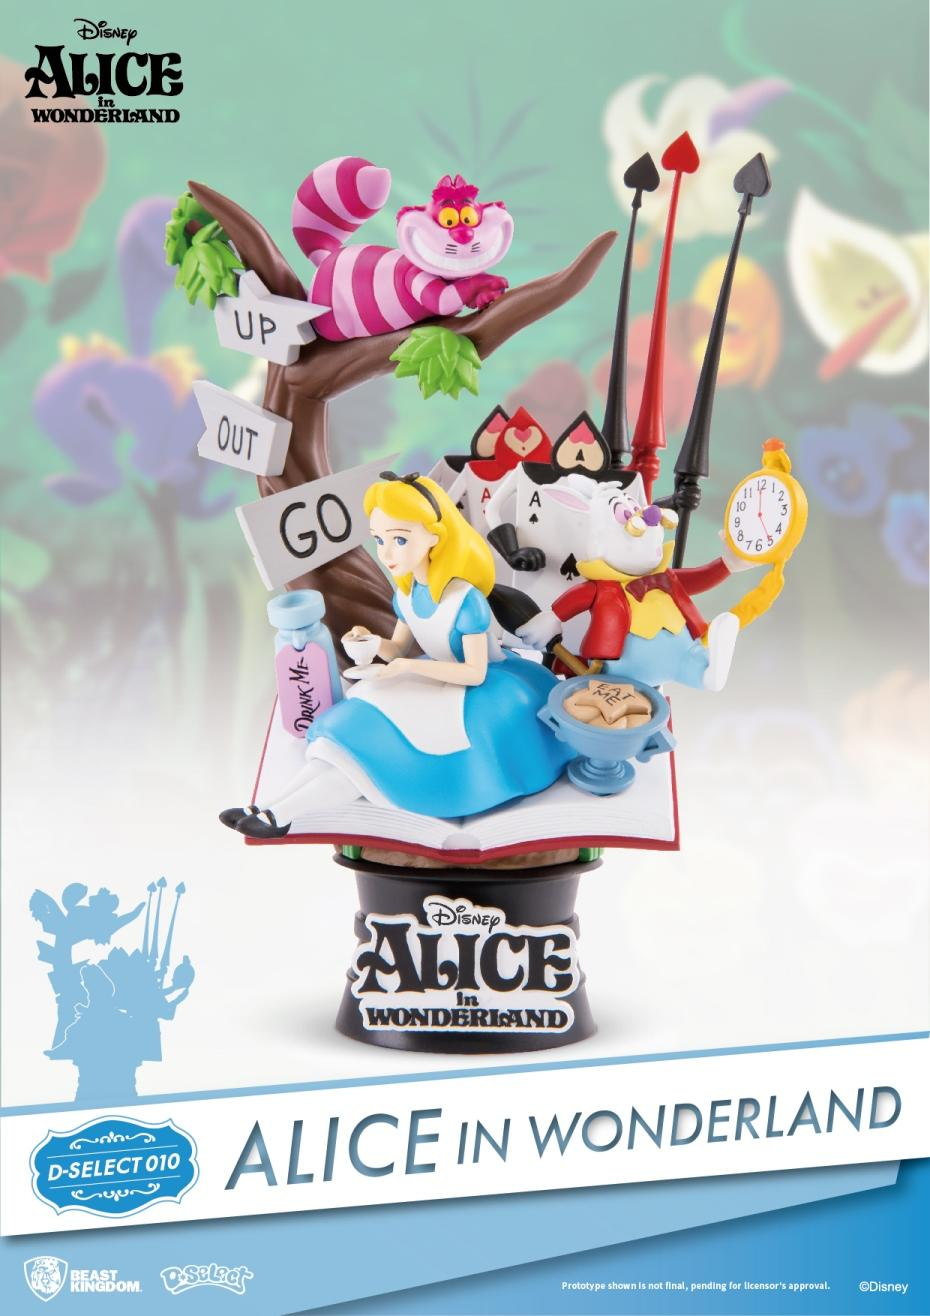 DISNEY - D-Select - Alice in Wonderland Diorama - 18cm